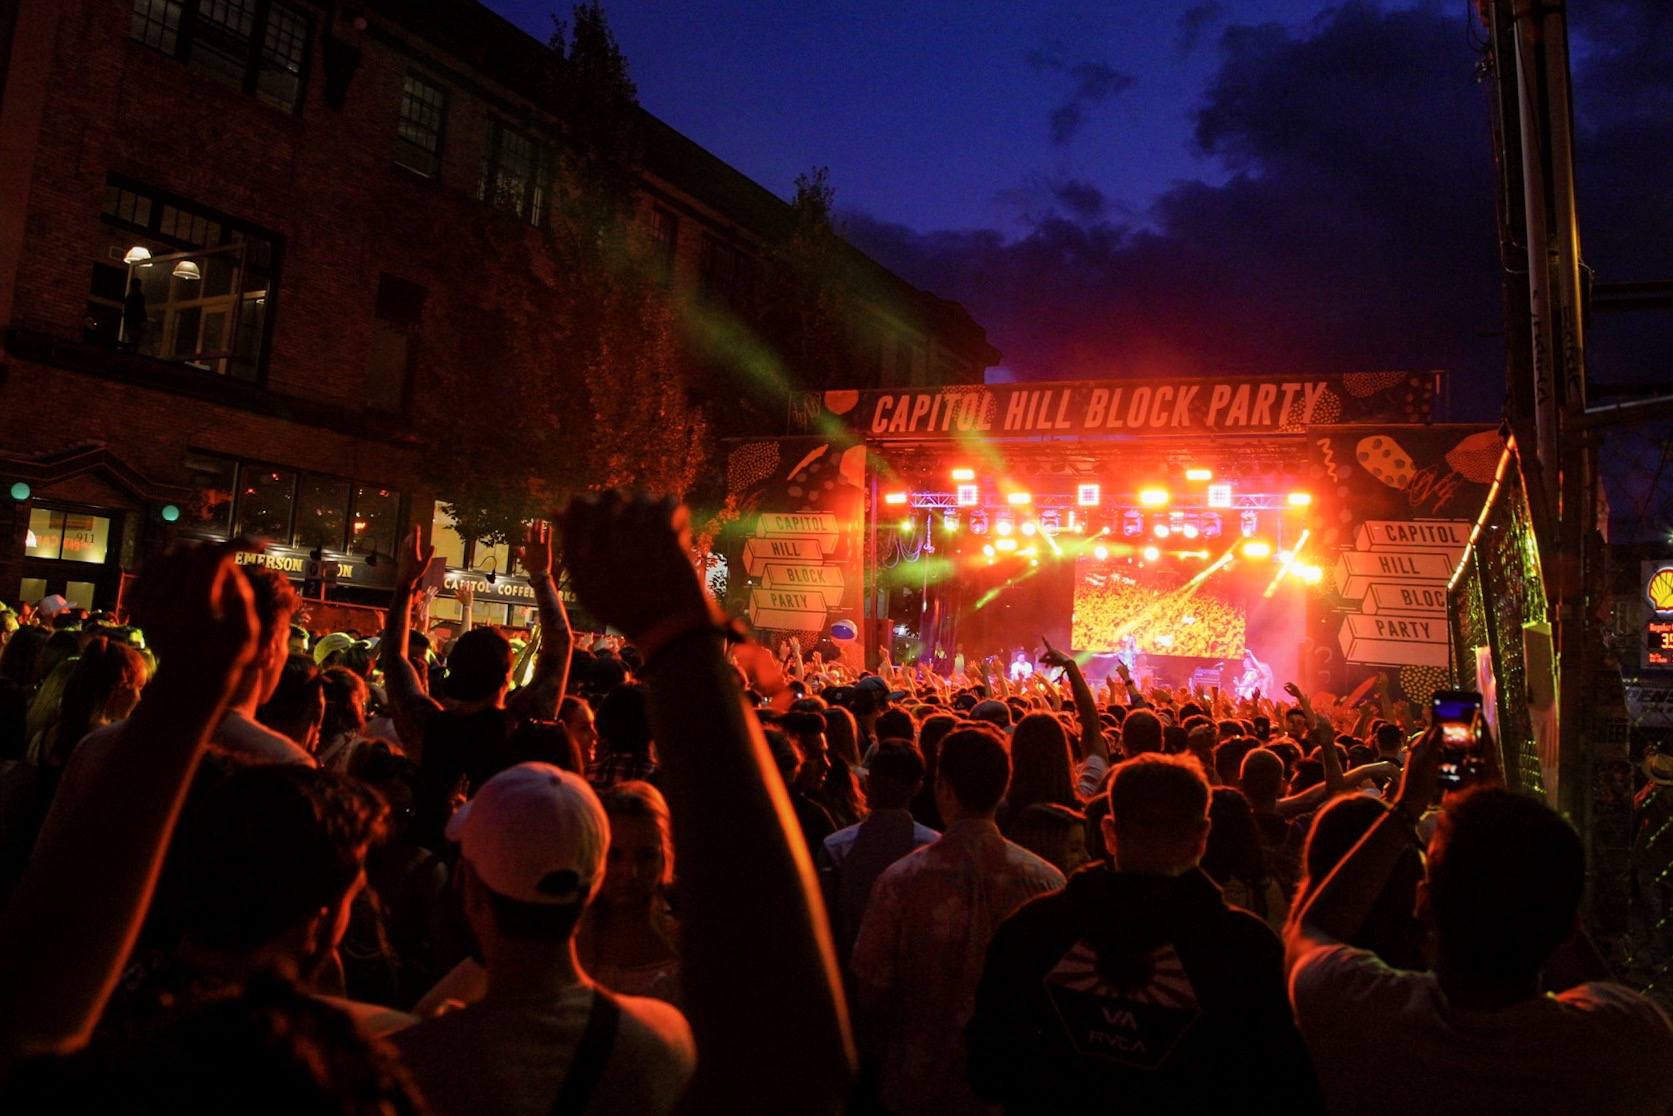 <p>Over 20,000 people are expected to attend Capitol Hill Block Party this year! The annual three-day music festival in the heart of the Capitol Hill neighborhood has six stages, indoor and outdoor venues, multiple beer gardens and VIP lounges. Headliners include Father John Misty, Dillon Francis, Brockhampton - as well as promising local talent and lesser-known performers across a variety of genres. (Image: Stephanie Dore / Seattle Refined)</p>